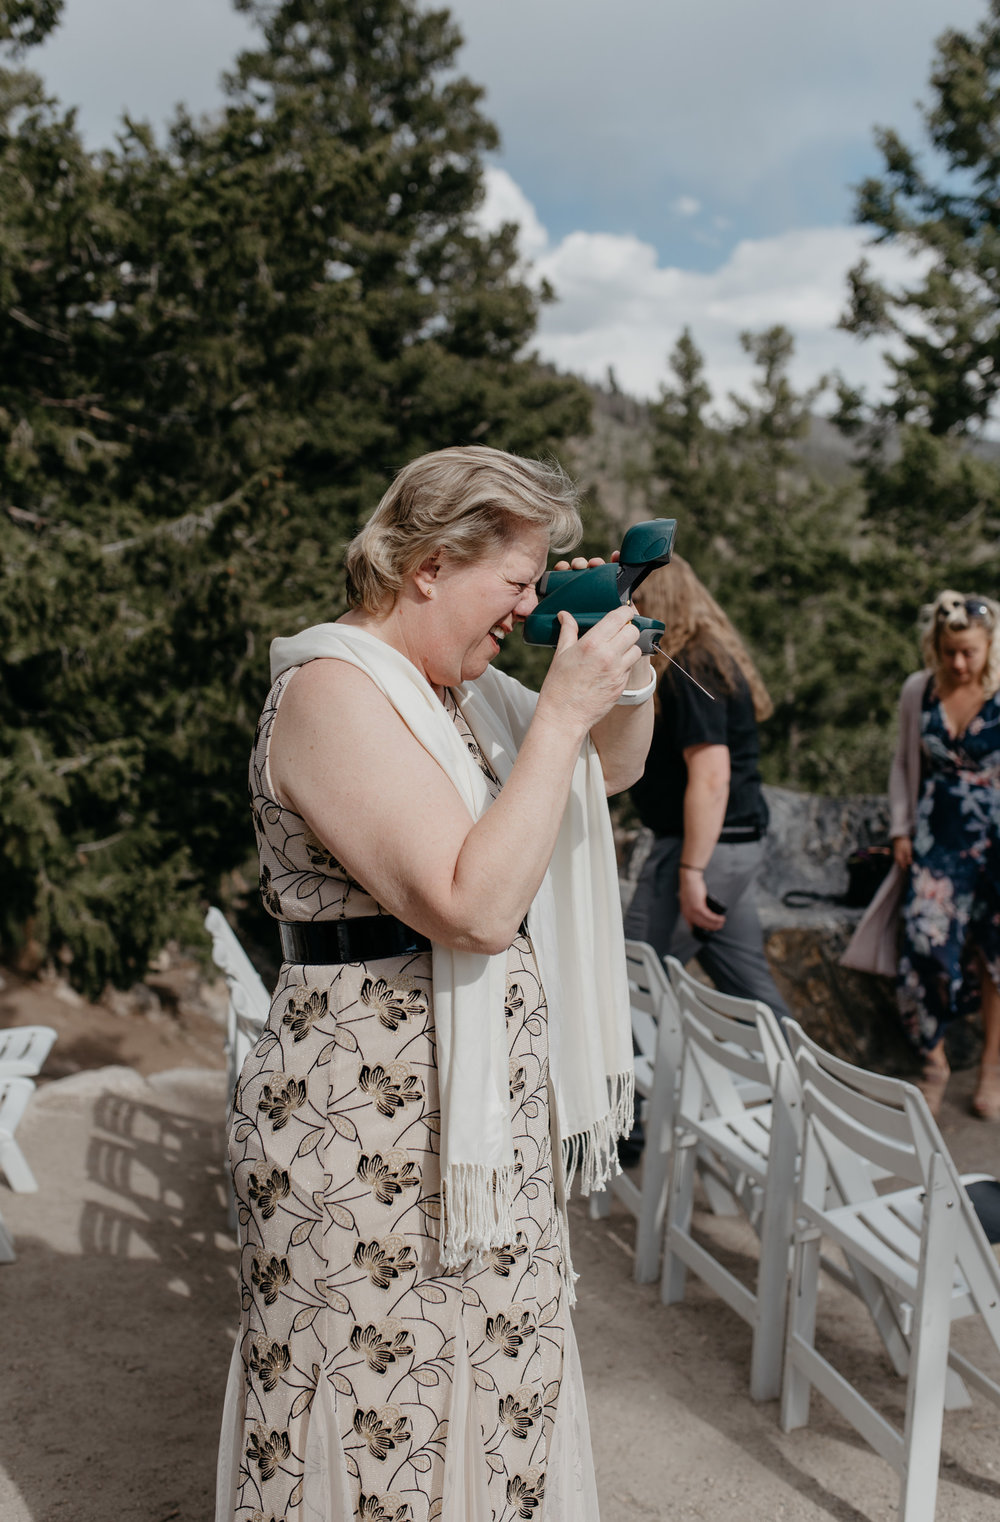 Colorado mountain wedding and elopement photographer. Breckenridge, Colorado wedding photographer.